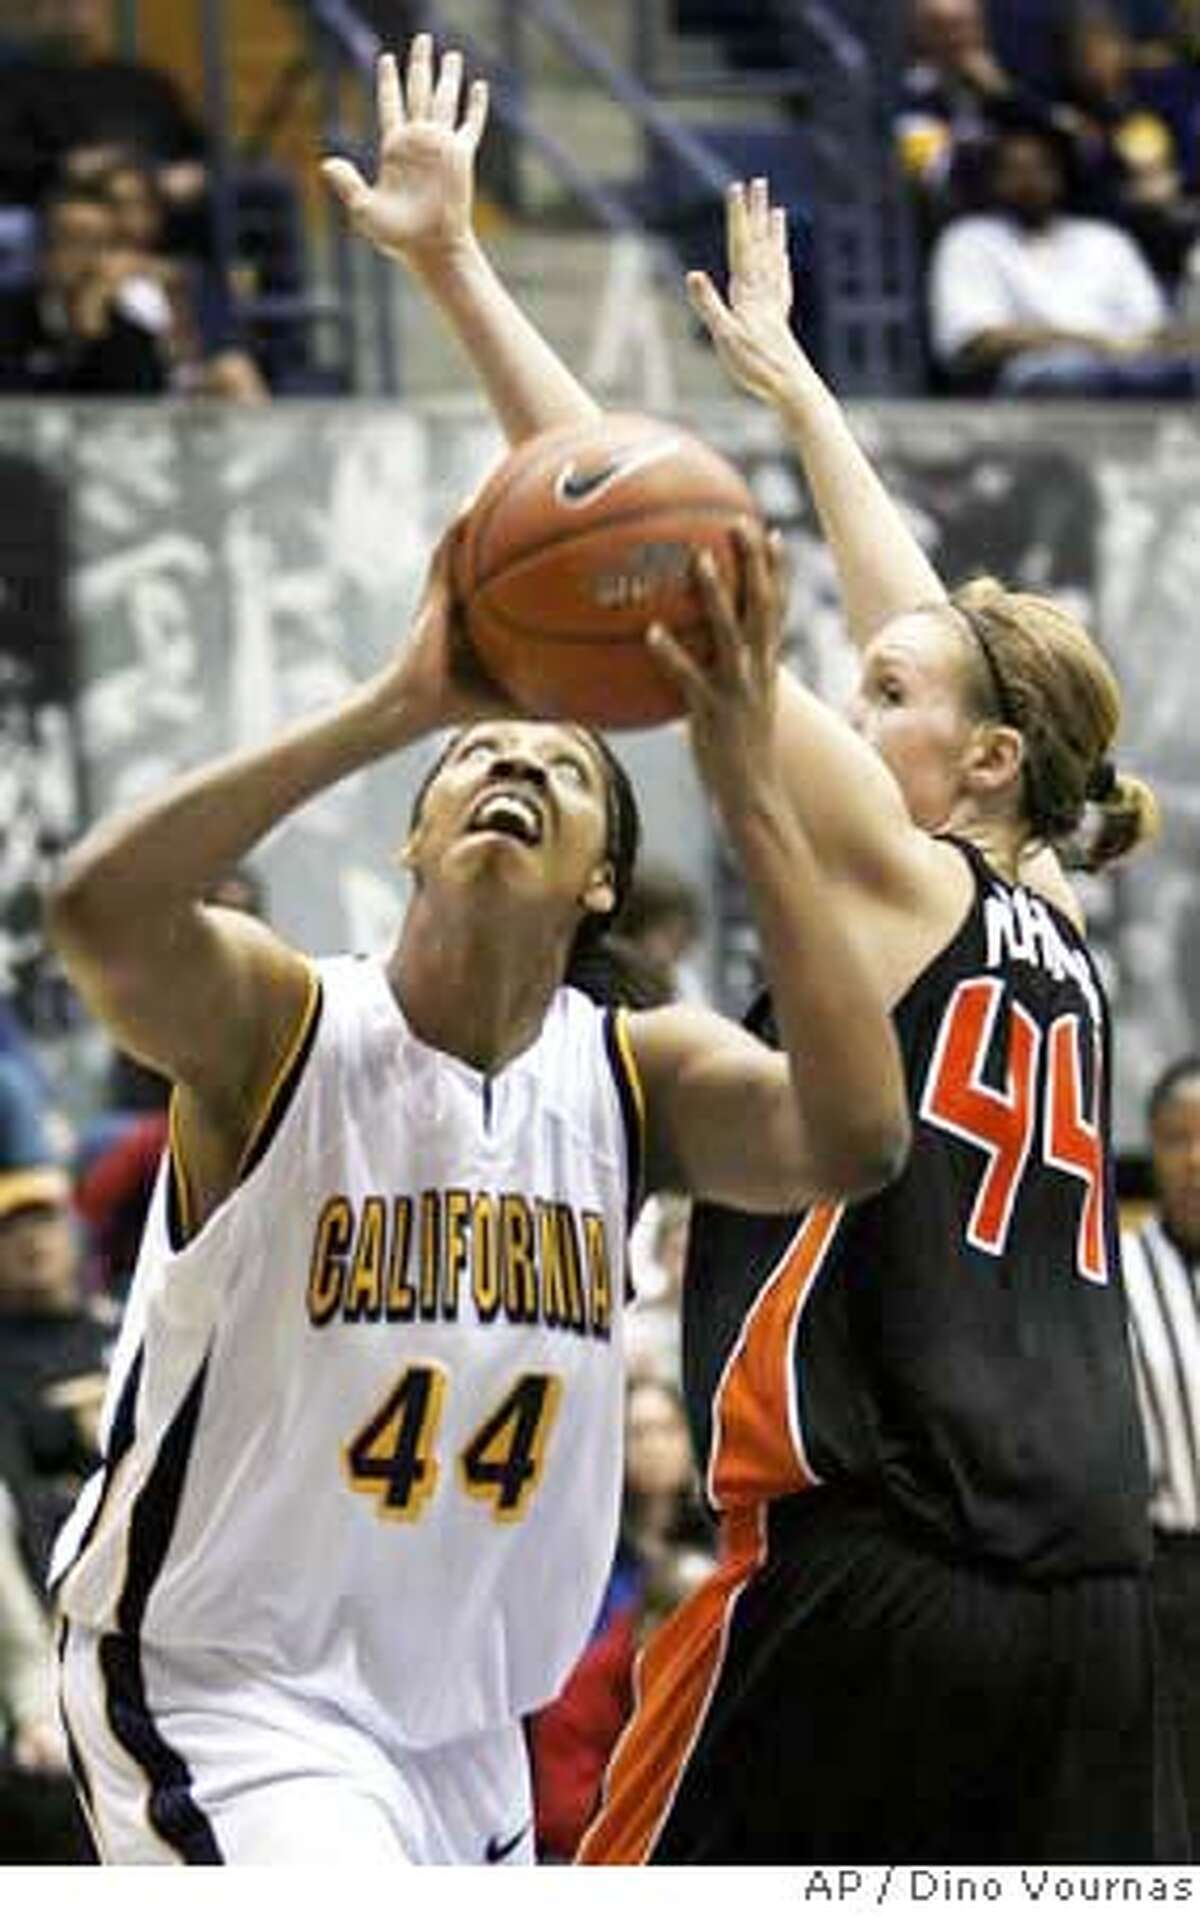 ###Live Caption:California's Ashley Walker (44) goes up for a shot against Oregon State's Stacey Nichols in the second half of a basketball game, Saturday, Jan. 12, 2008, in Berkeley, Calif. California won 61-45. (AP Photo/Dino Vournas)###Caption History:California's Ashley Walker (44) goes up for a shot against Oregon State's Stacey Nichols in the second half of a basketball game, Saturday, Jan. 12, 2008, in Berkeley, Calif. California won 61-45. (AP Photo/Dino Vournas) Ran on: 01-13-2008 Cals Ashley Walker and Stanfords Candice Wiggins helped their teams post easy wins in Pac-10 play Saturday. The day was a busy one in college basketball, highlighted by UCLA beating Washington State in a big Pac-10 mens game. Pages D6-9 Ran on: 01-13-2008###Notes:Ashley Walker, Stacey Nichols###Special Instructions:EFE OUT